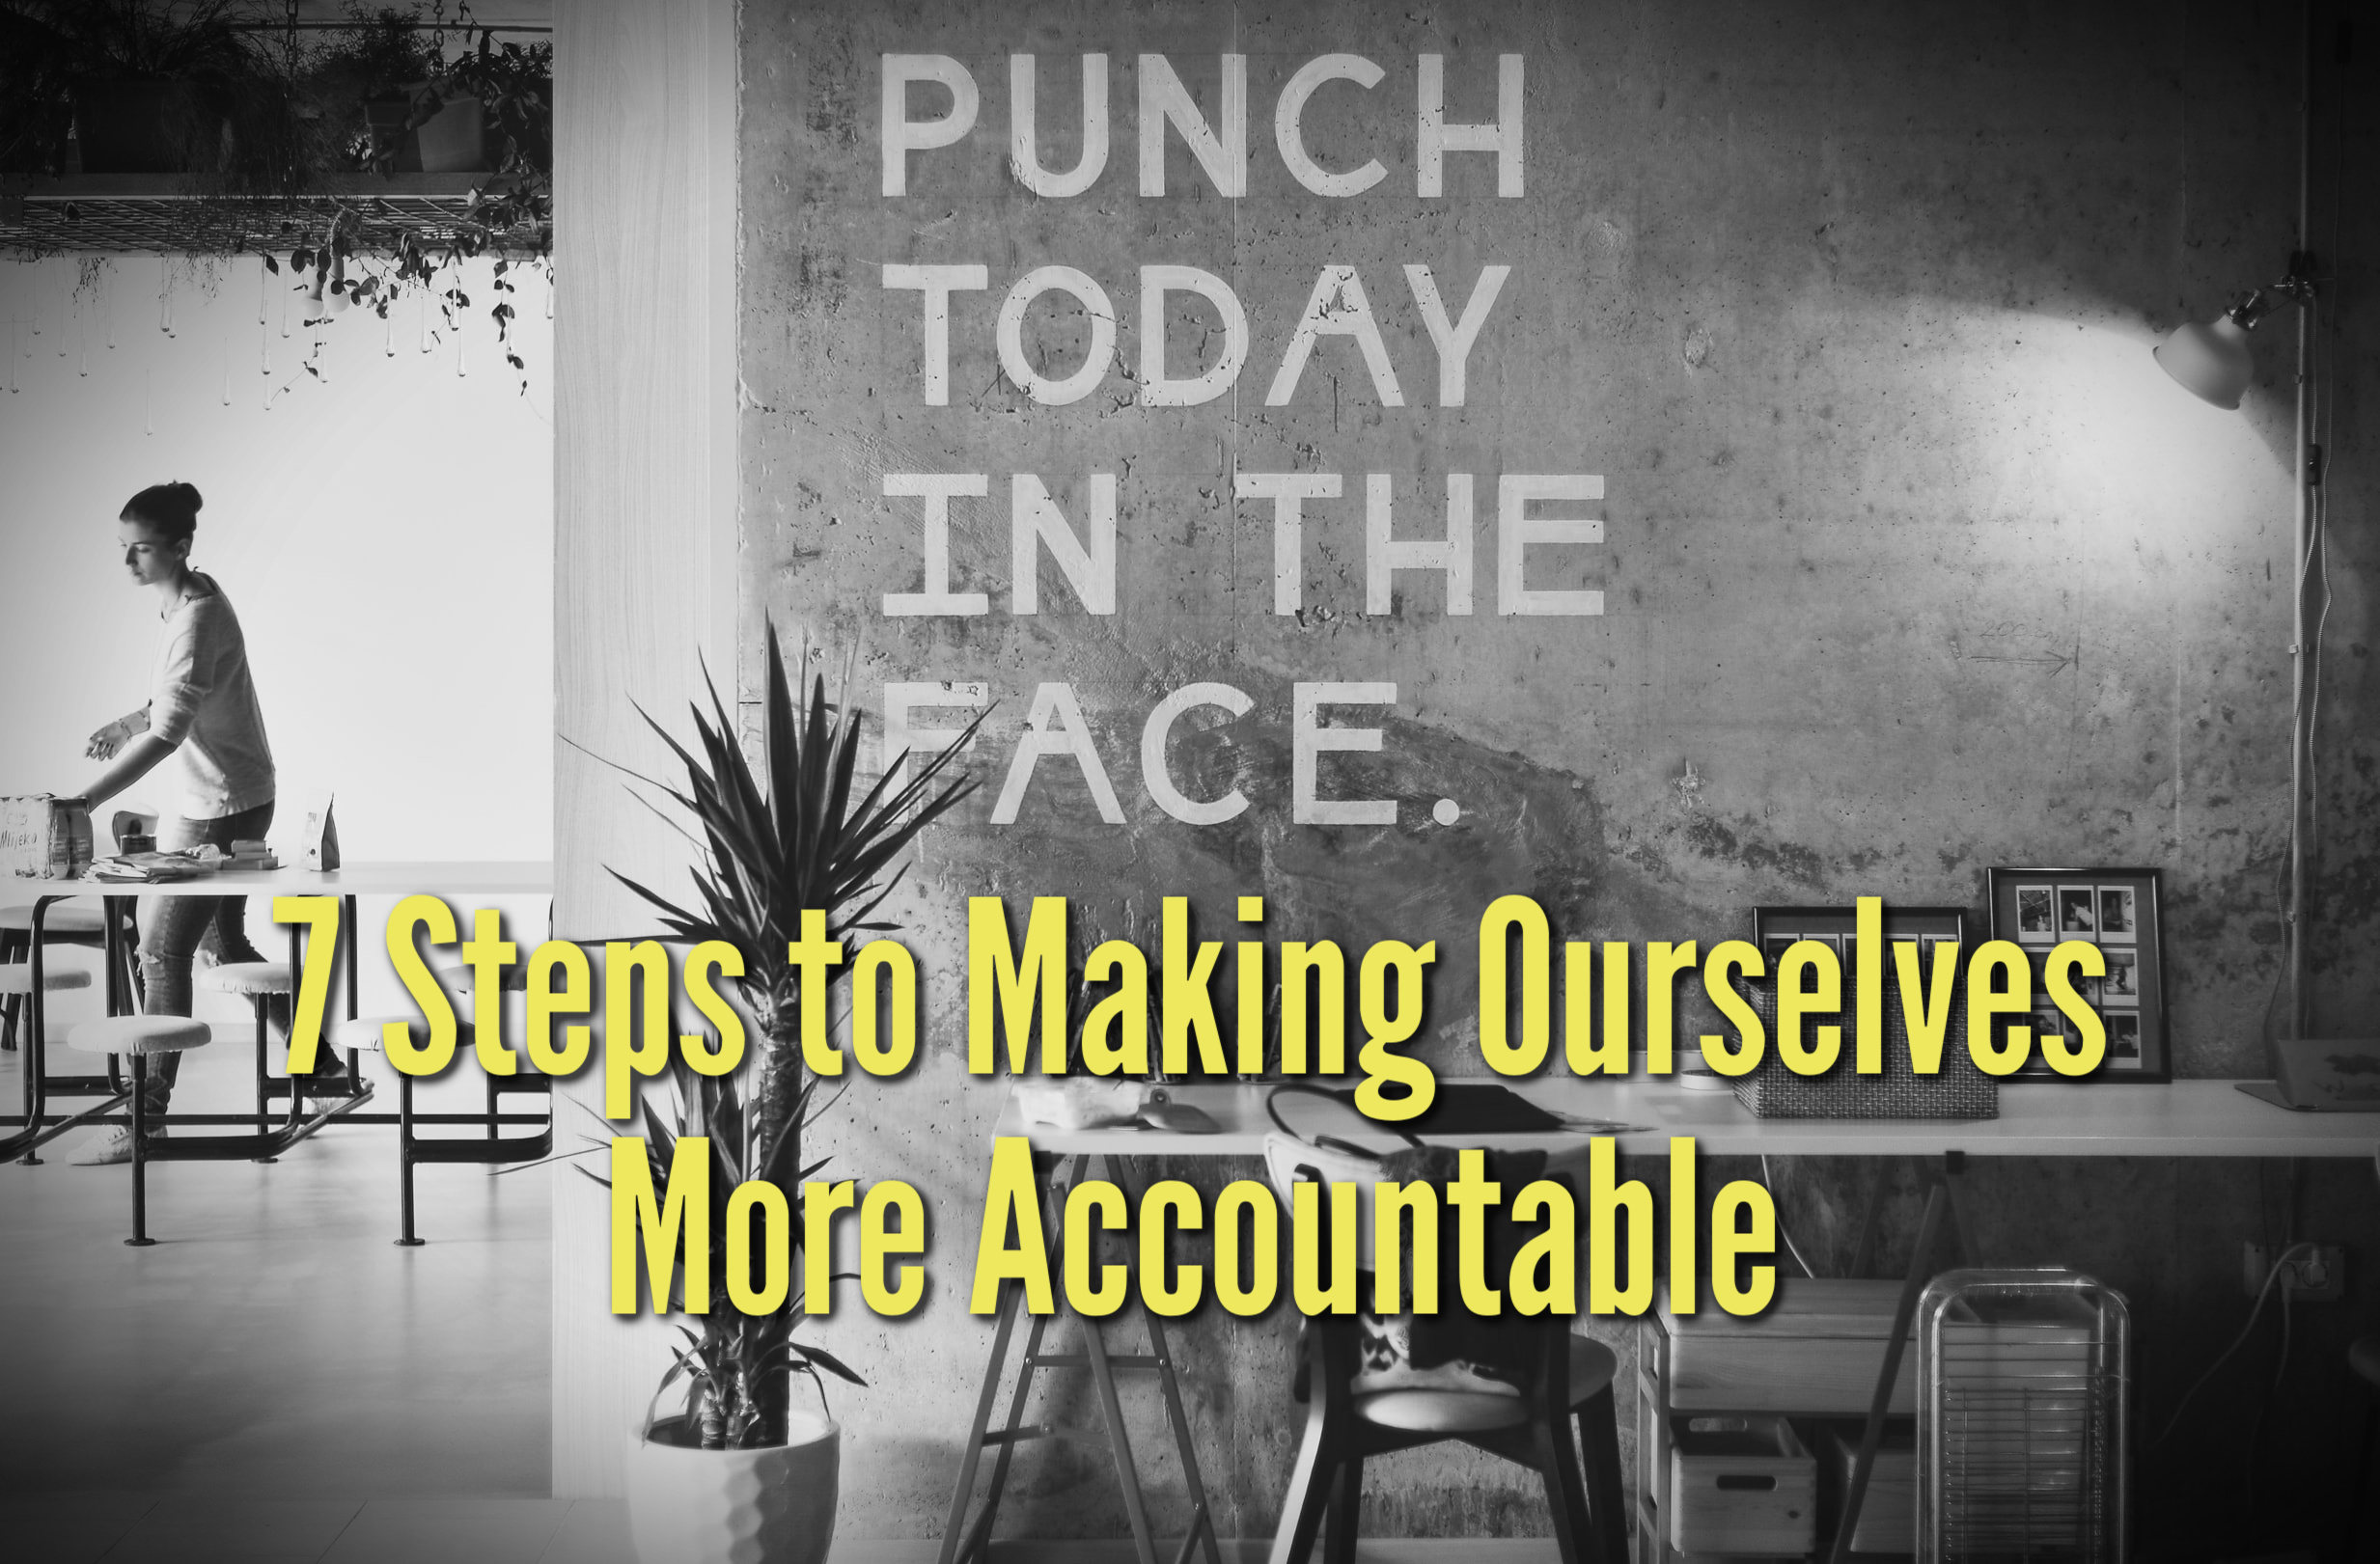 7 Steps to Making Ourselves More Accountable